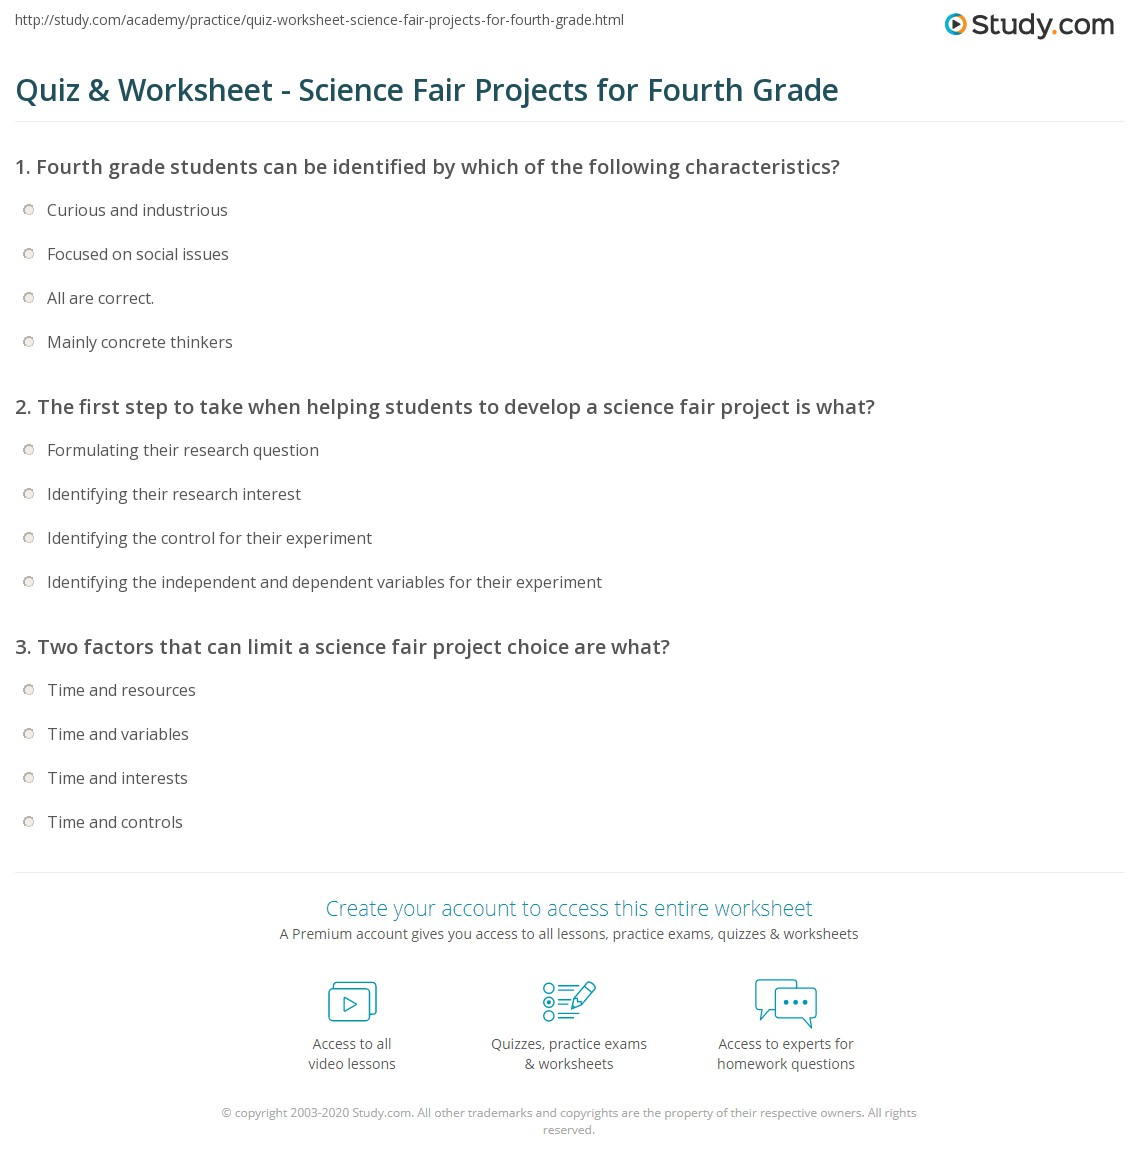 Uncategorized Science Worksheets For 4th Grade worksheet 4th grade science worksheets fiercebad and quiz fair projects for fourth study com print